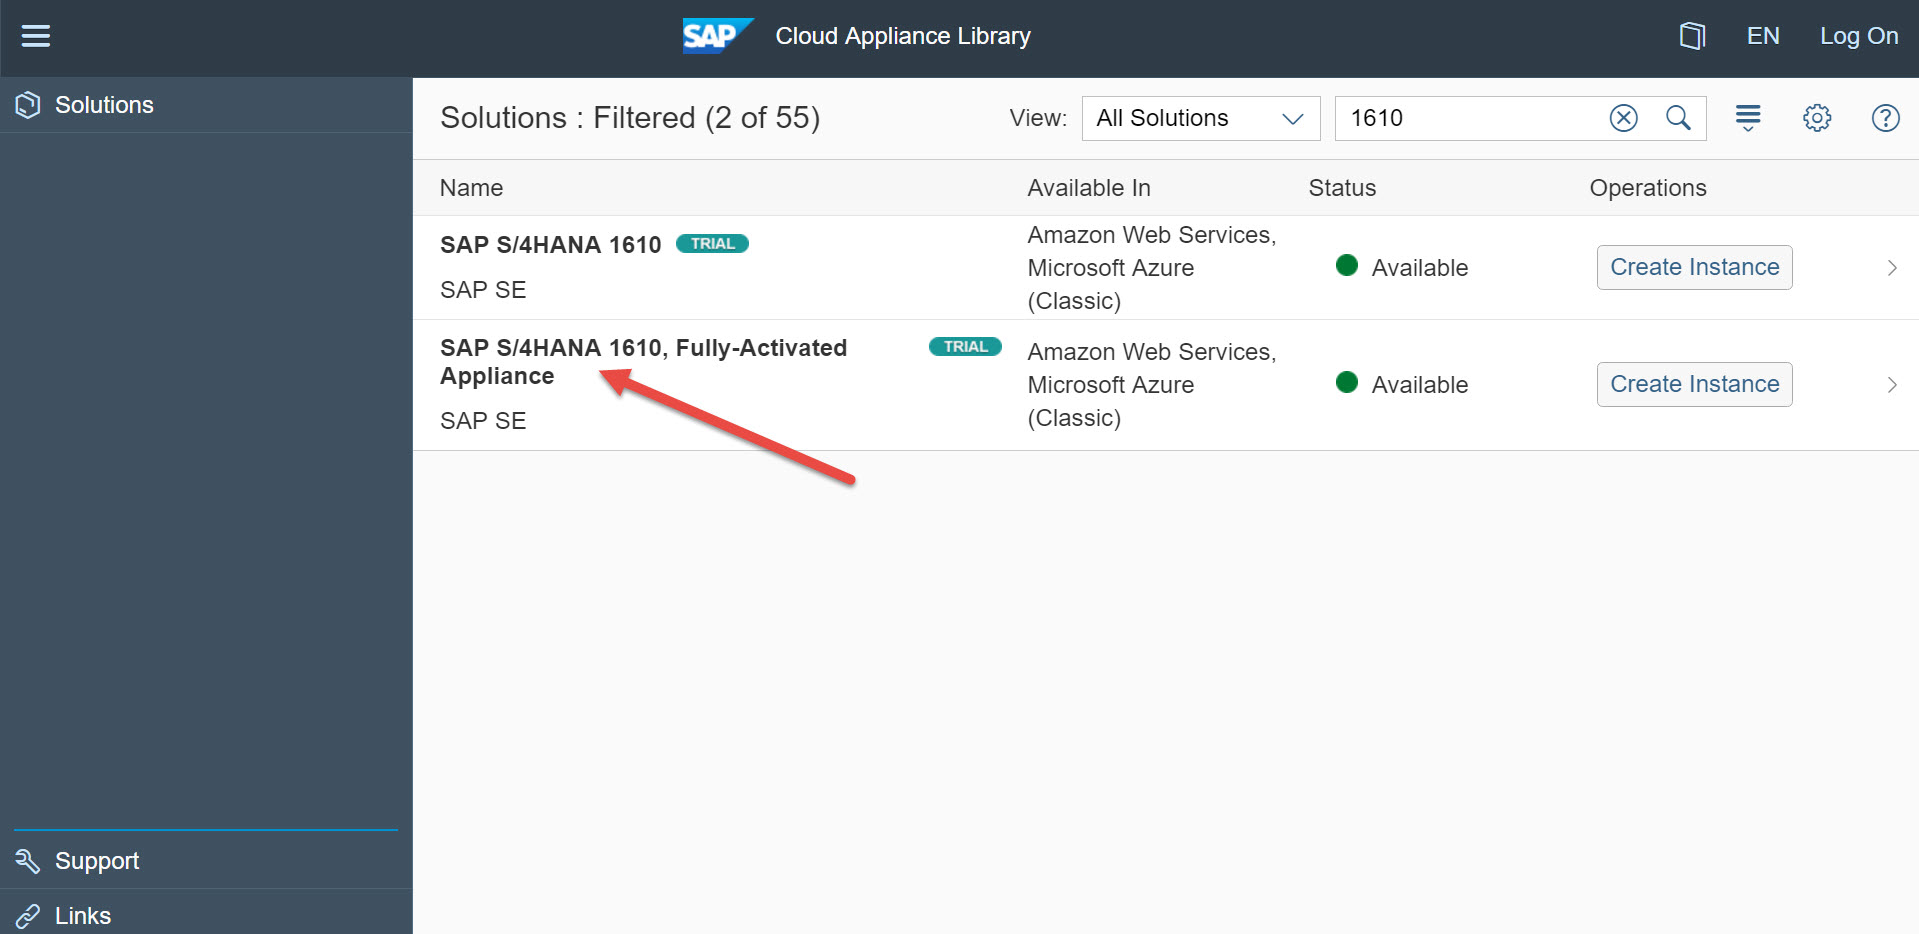 S/4HANA Trial solution in the Cloud Appliance Library